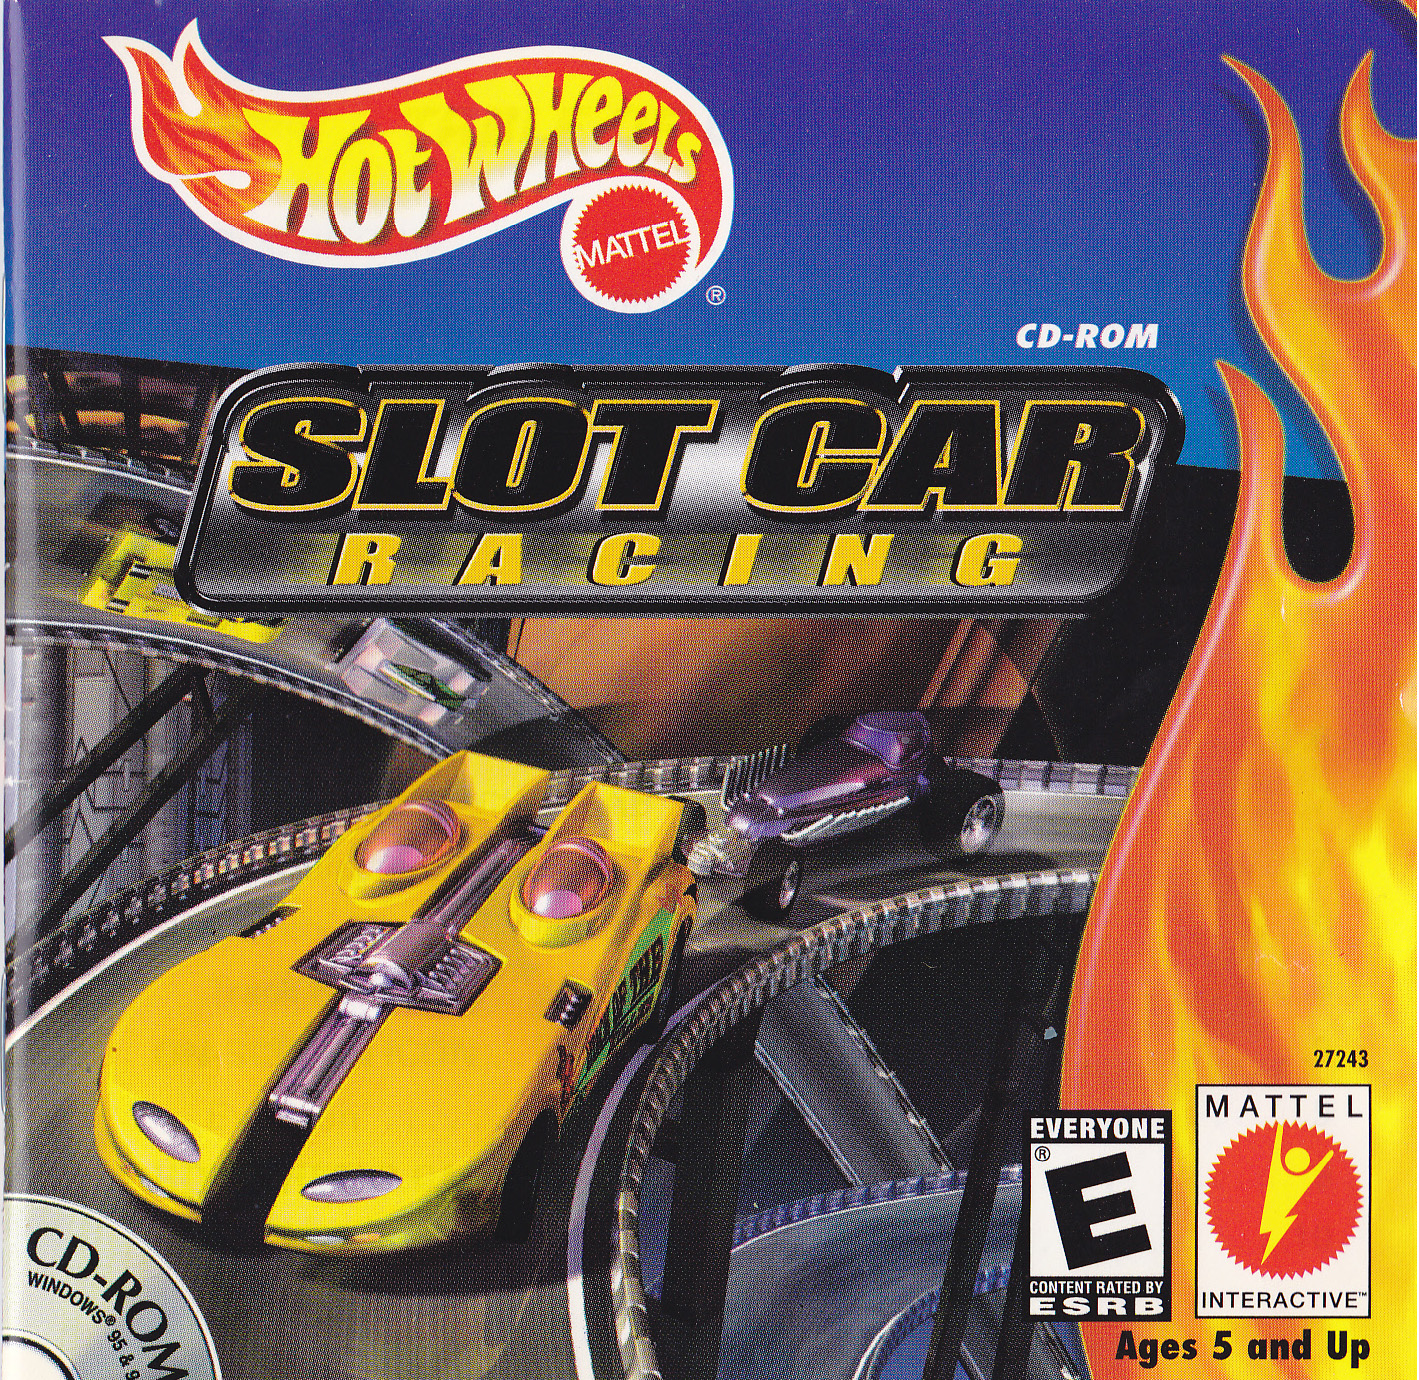 Hot Wheels Slot Car Racing comes with unique controllers.These controllers are similar to actual slot car controllers.There are two, and they each have a yellow button on the back of the controller.Like a real slot car, the speed of the car will depend on how much the player squeezes the contoller.